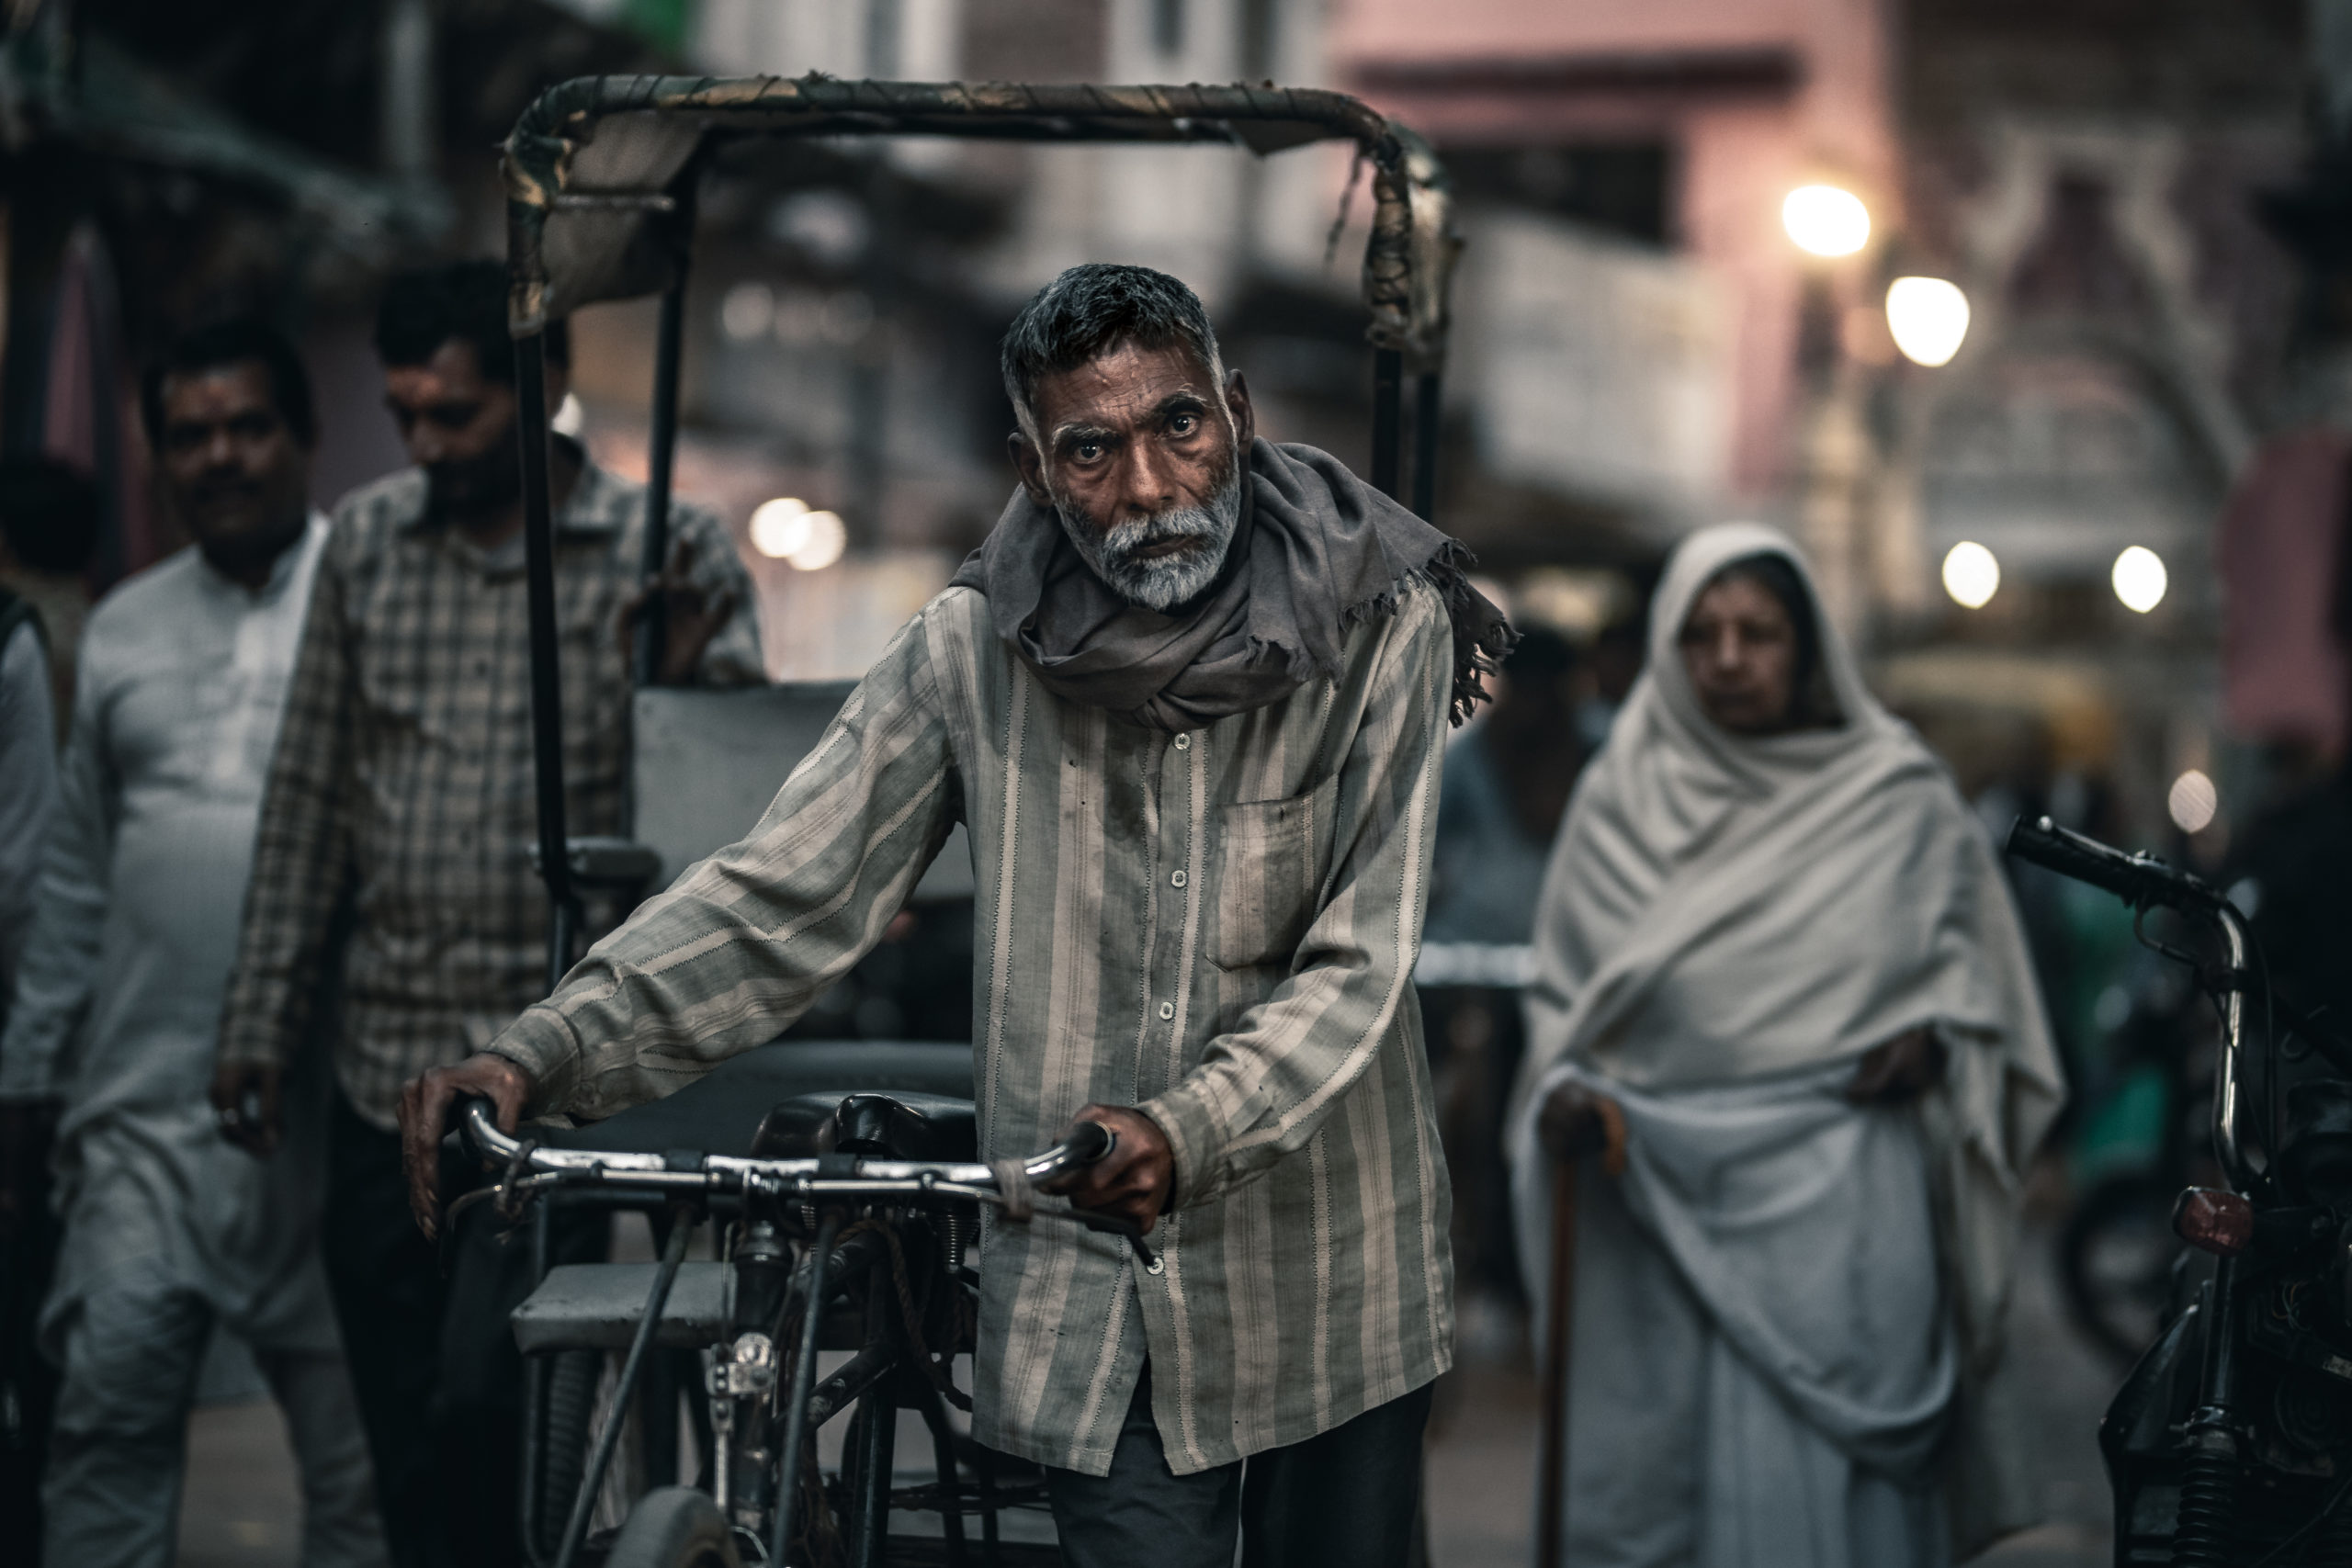 Portrait street photography of a rickshaw driver walking in the streets of Mathura, India